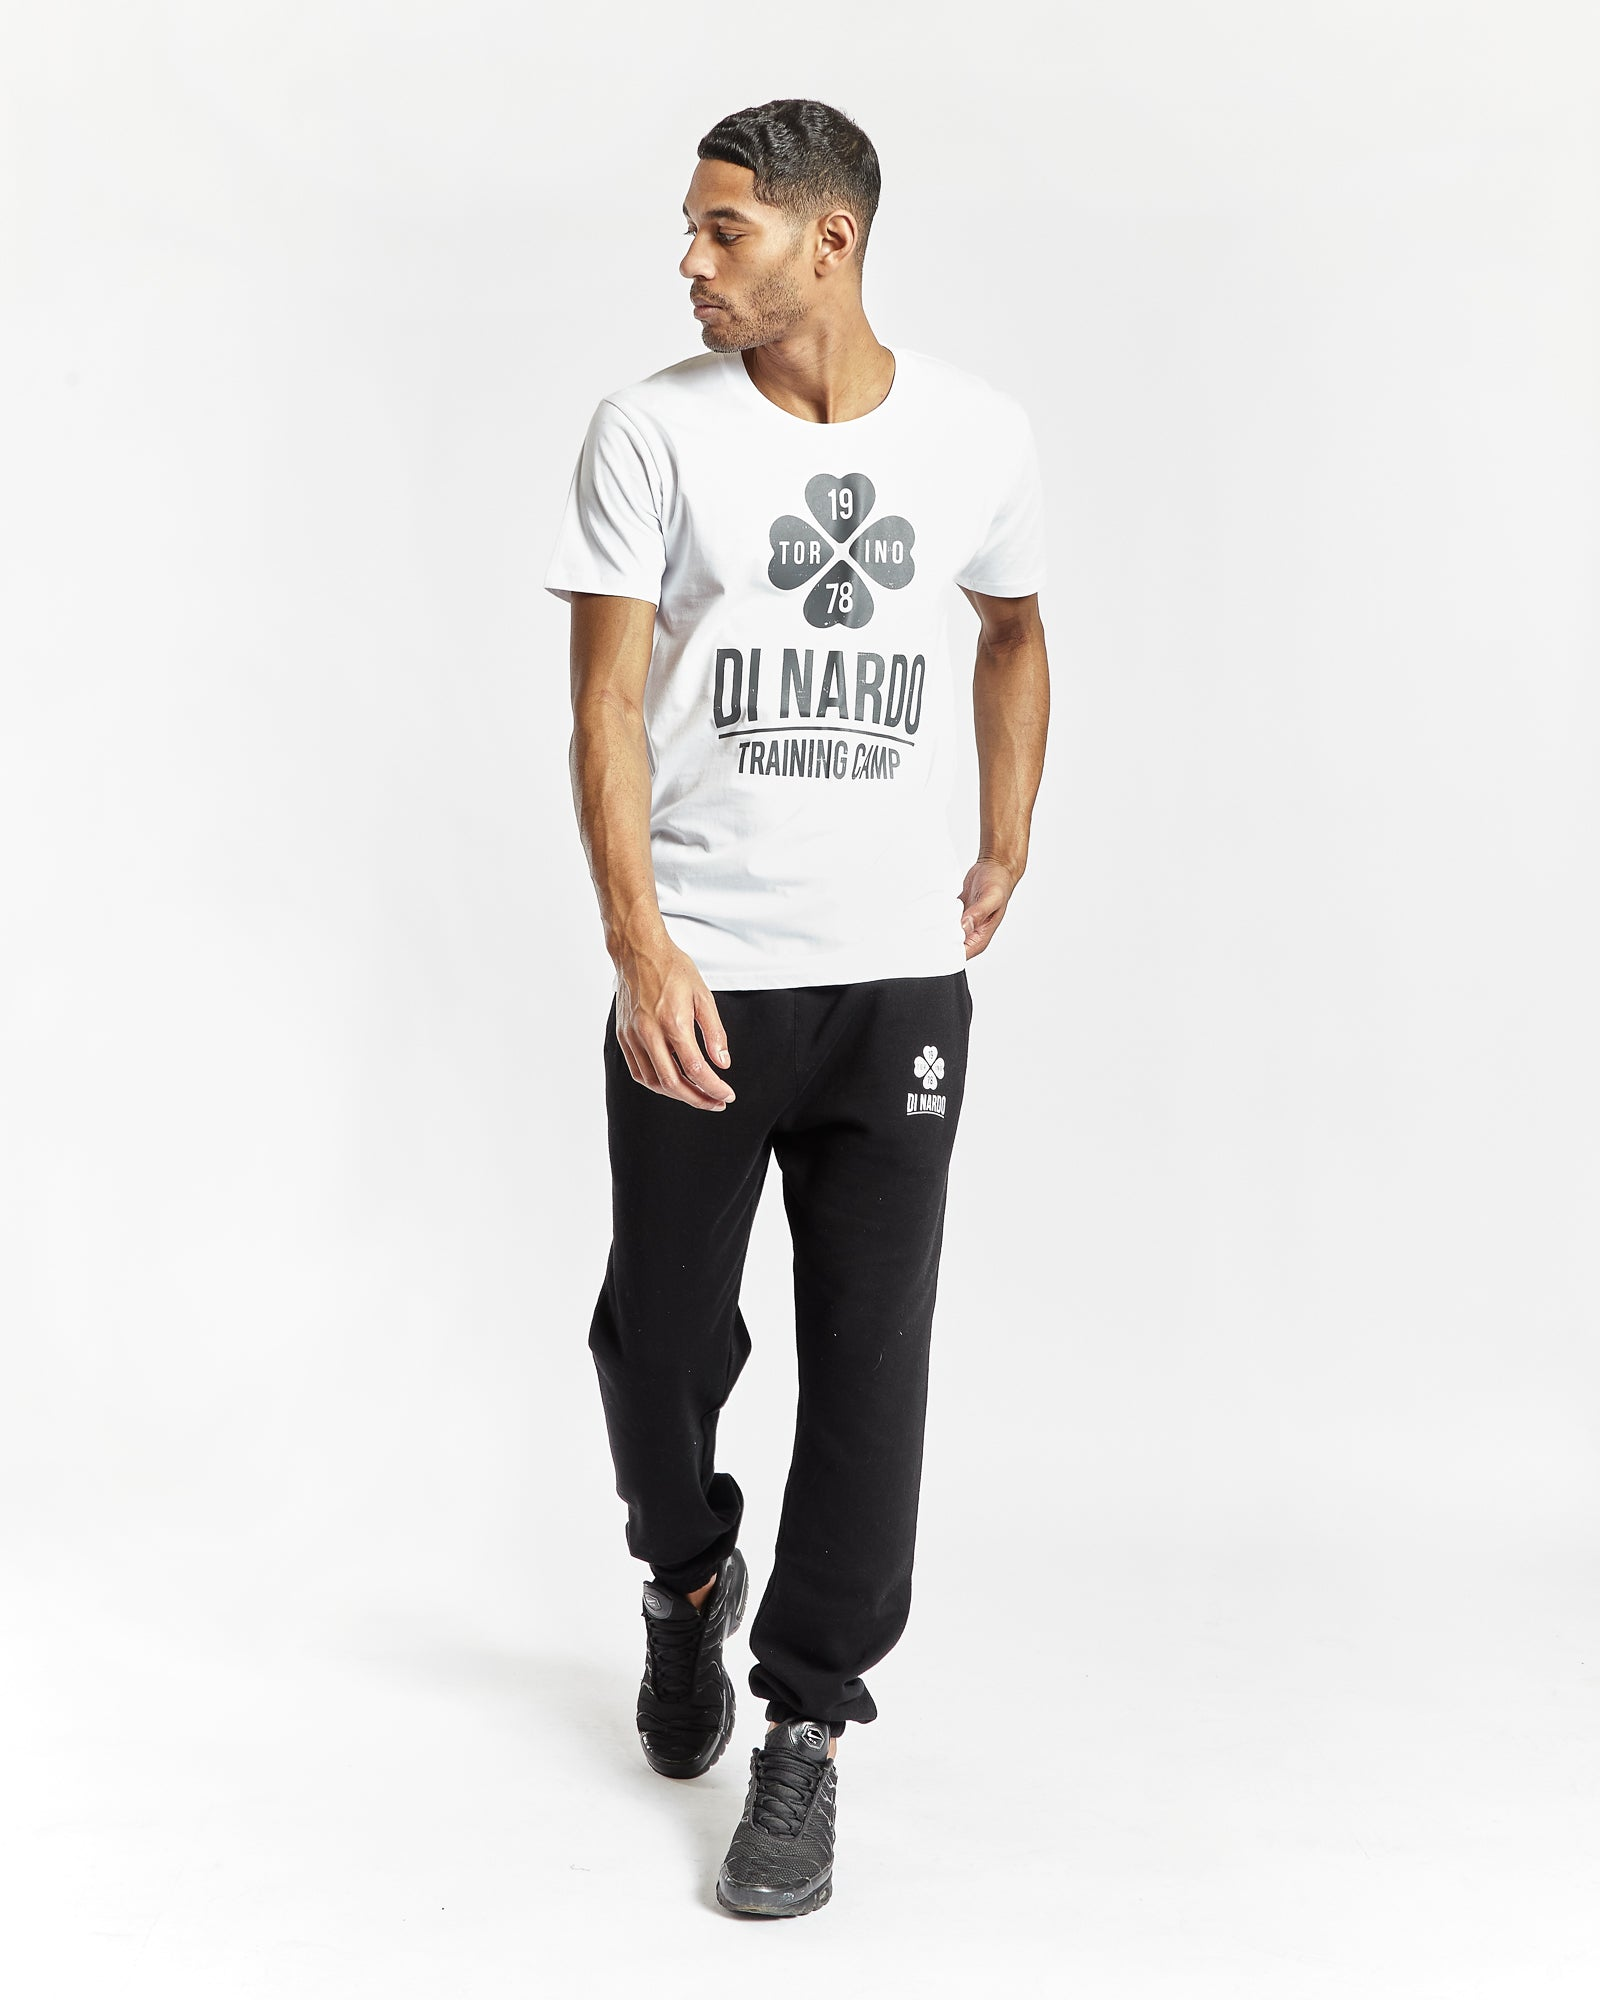 Di Nardo Training Camp White T-Shirt